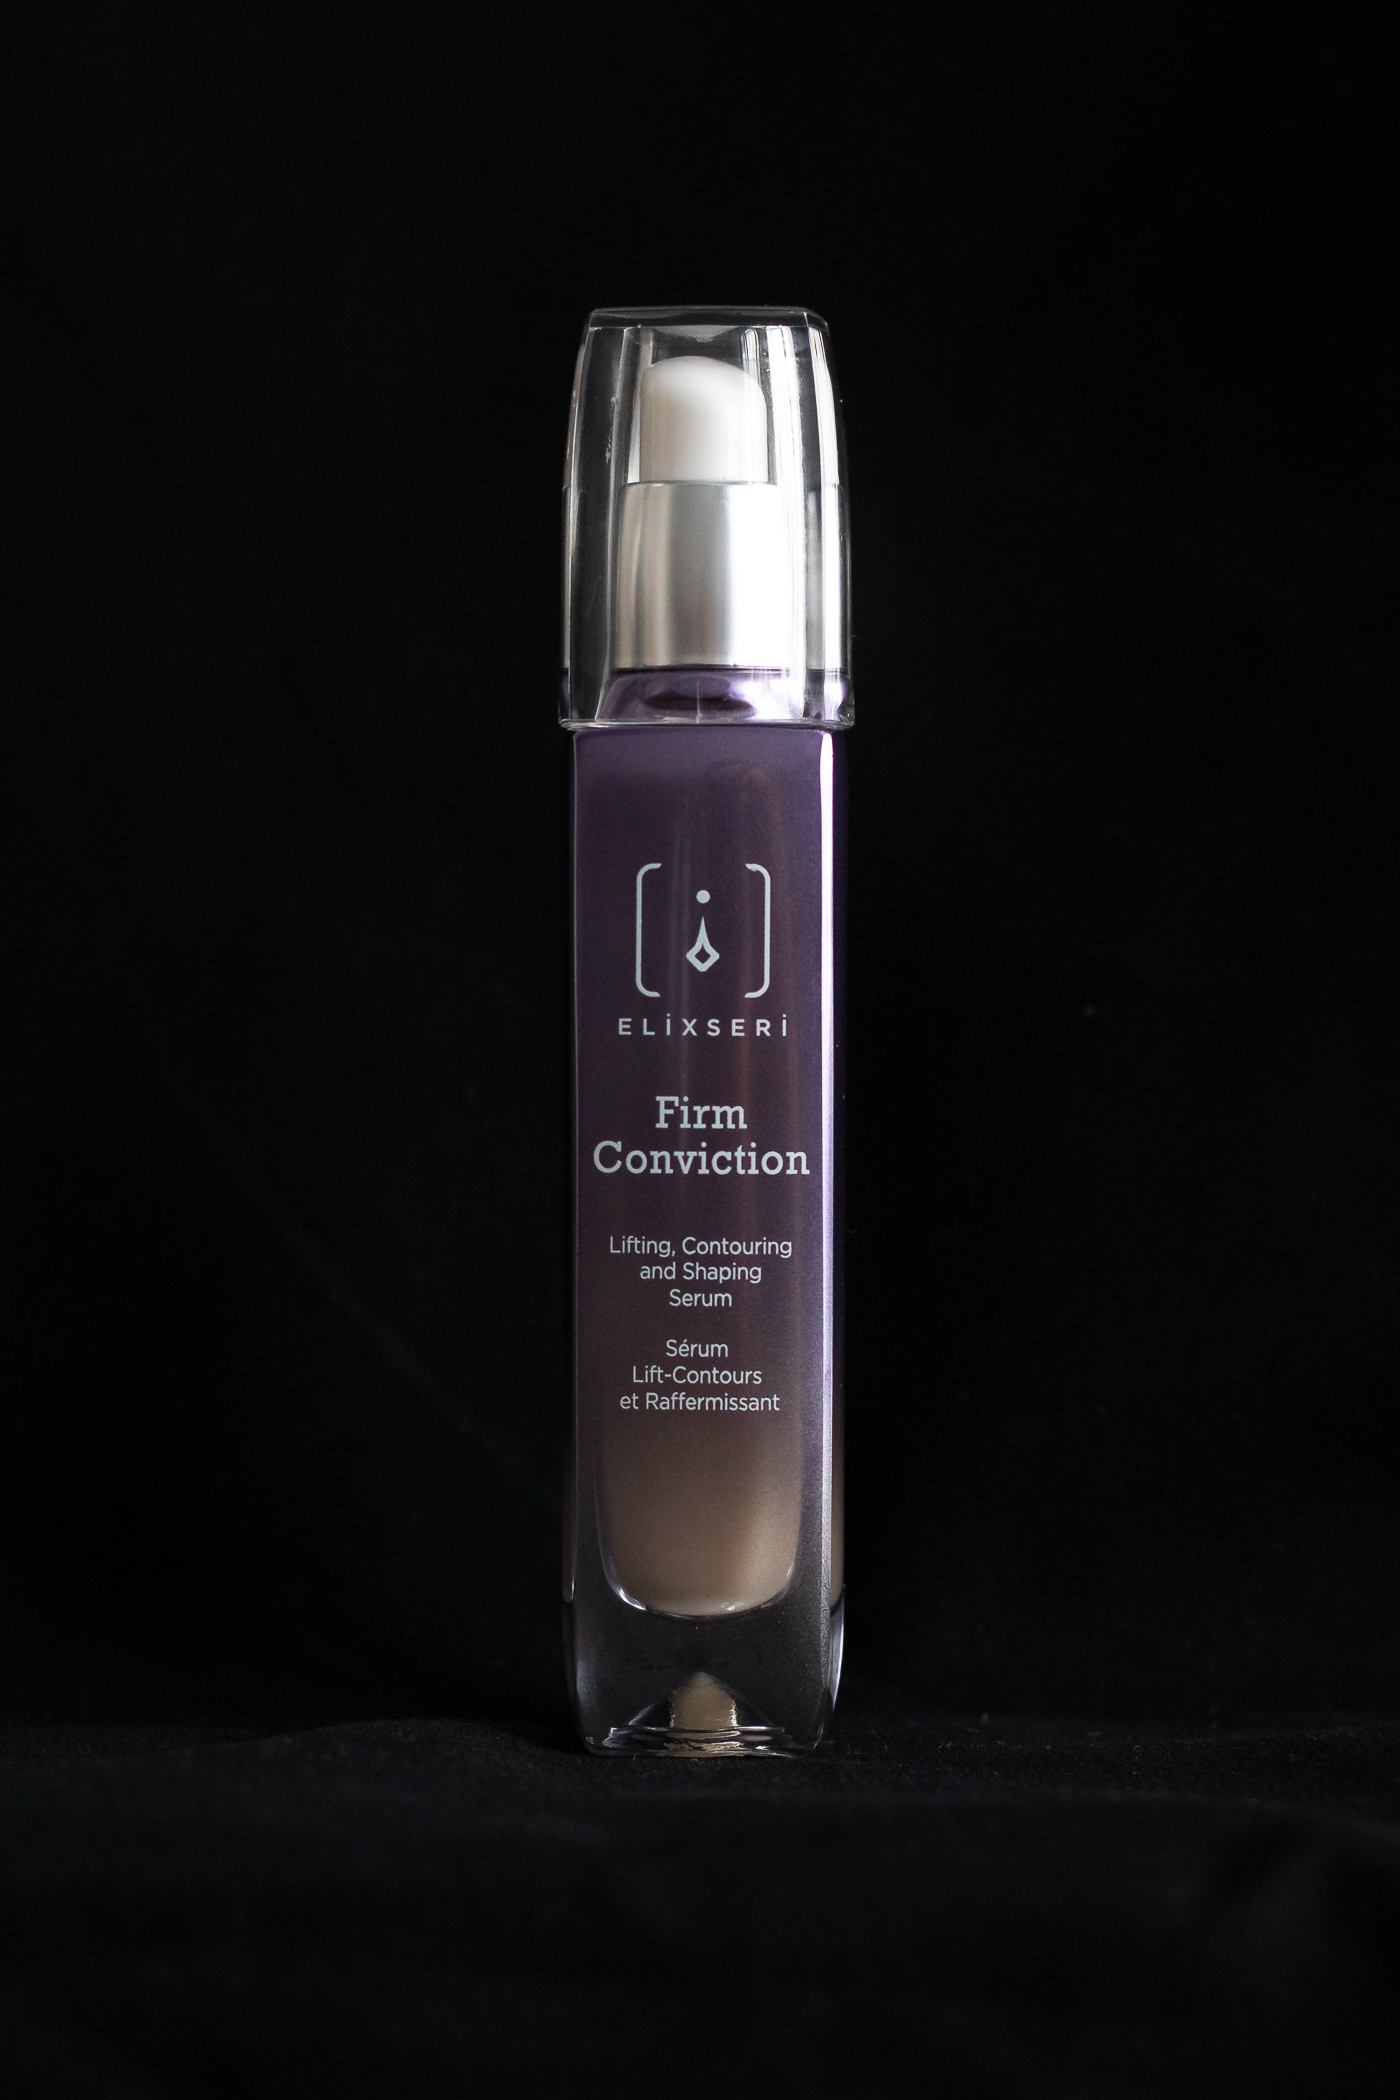 Elixseri Firm Conviction Skin Serum Product Review